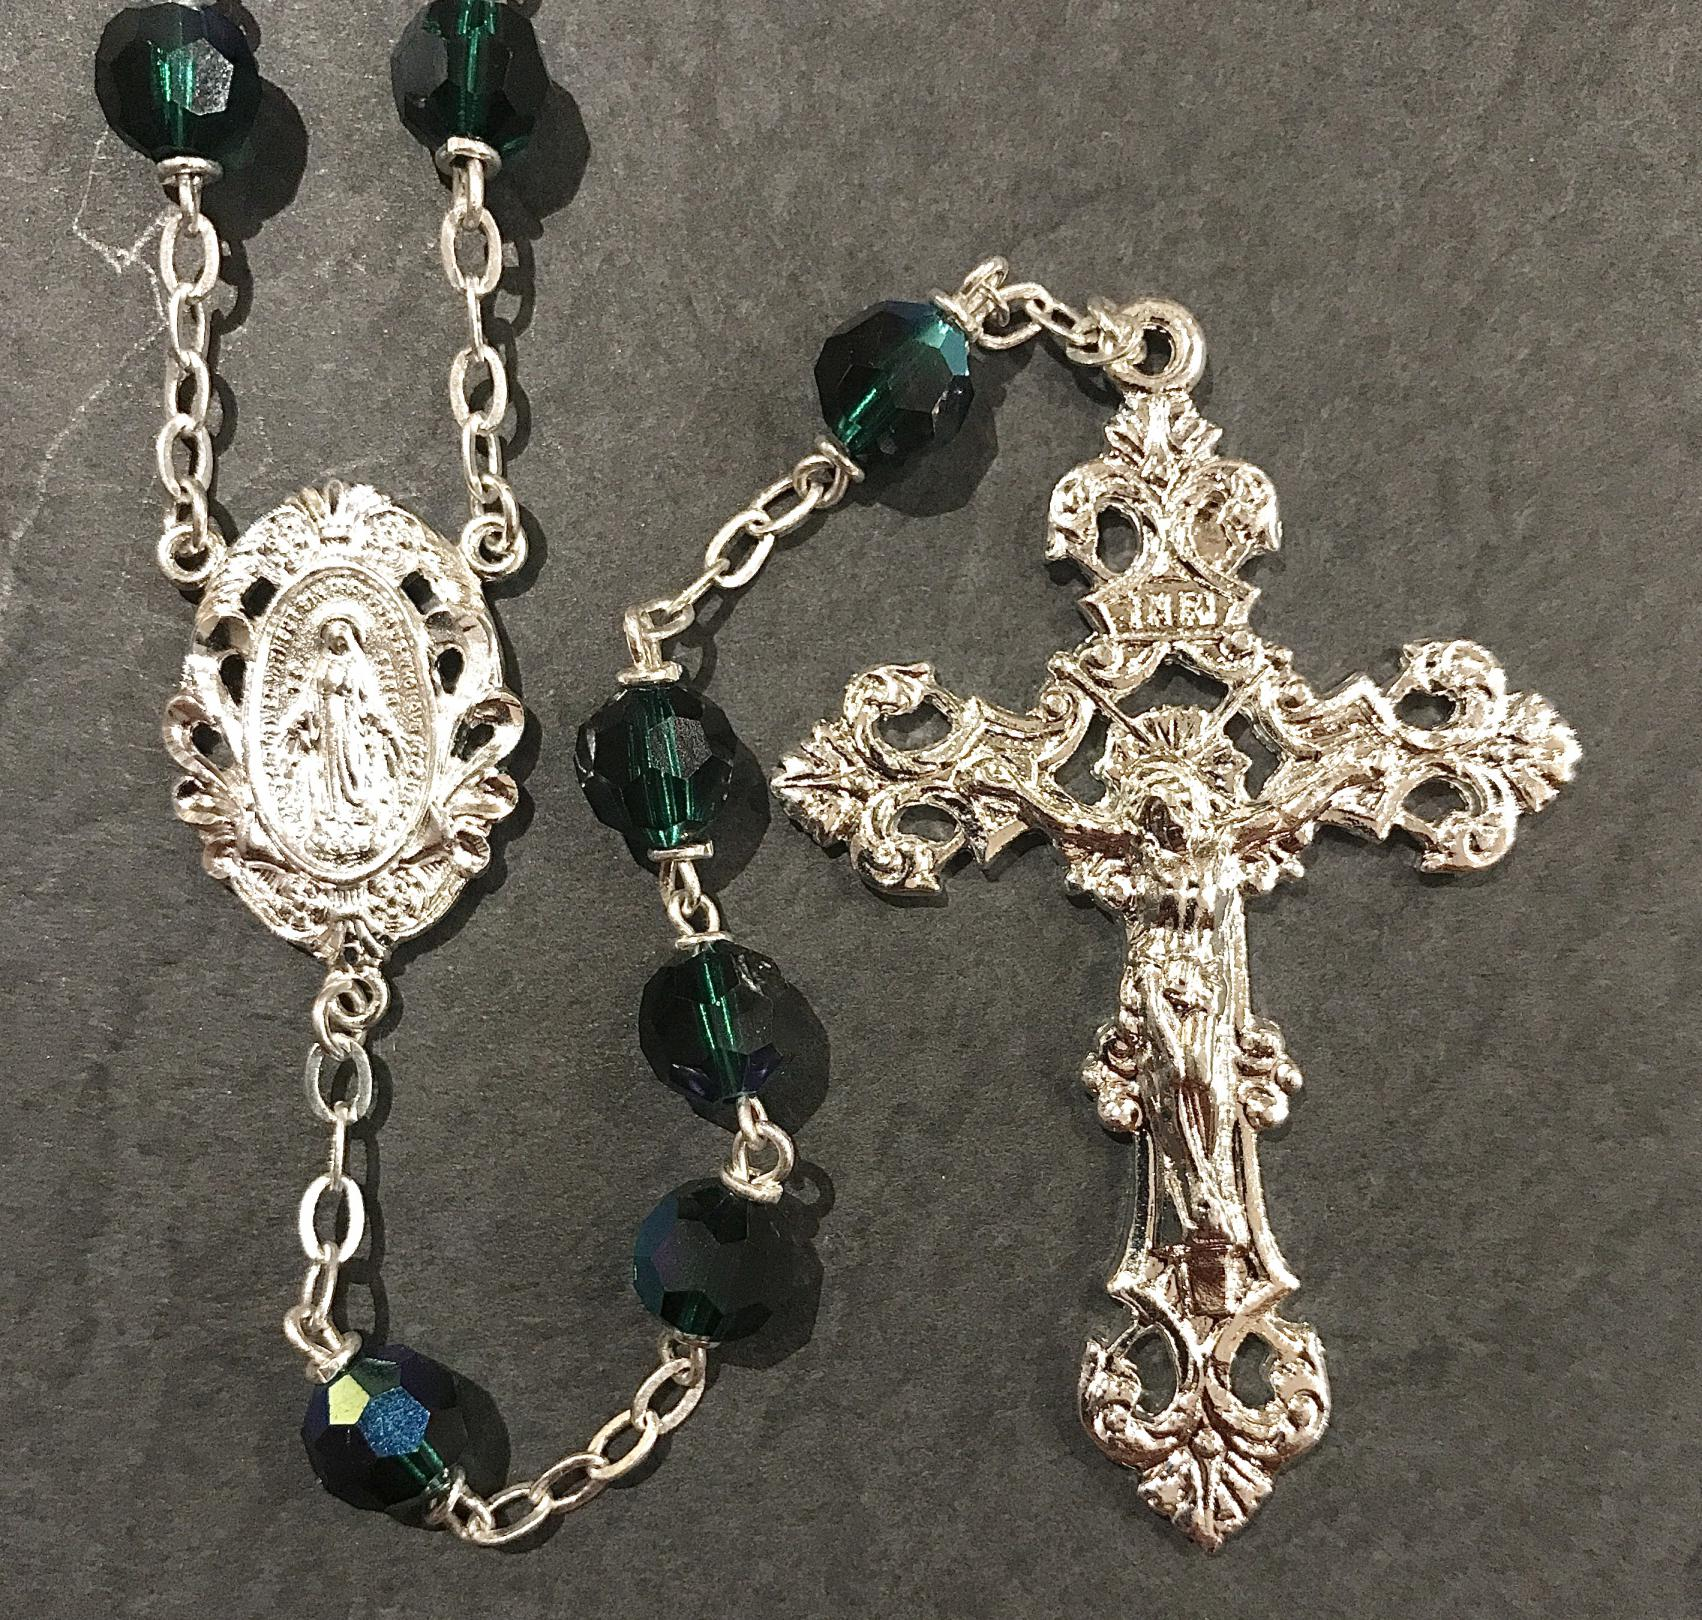 7mm EMERALD TIN CUT AB ROSARY WITH STERLING SILVER PLATED CRUCIFIX, CENTER, WIRE, CHAIN GIFT BOXED